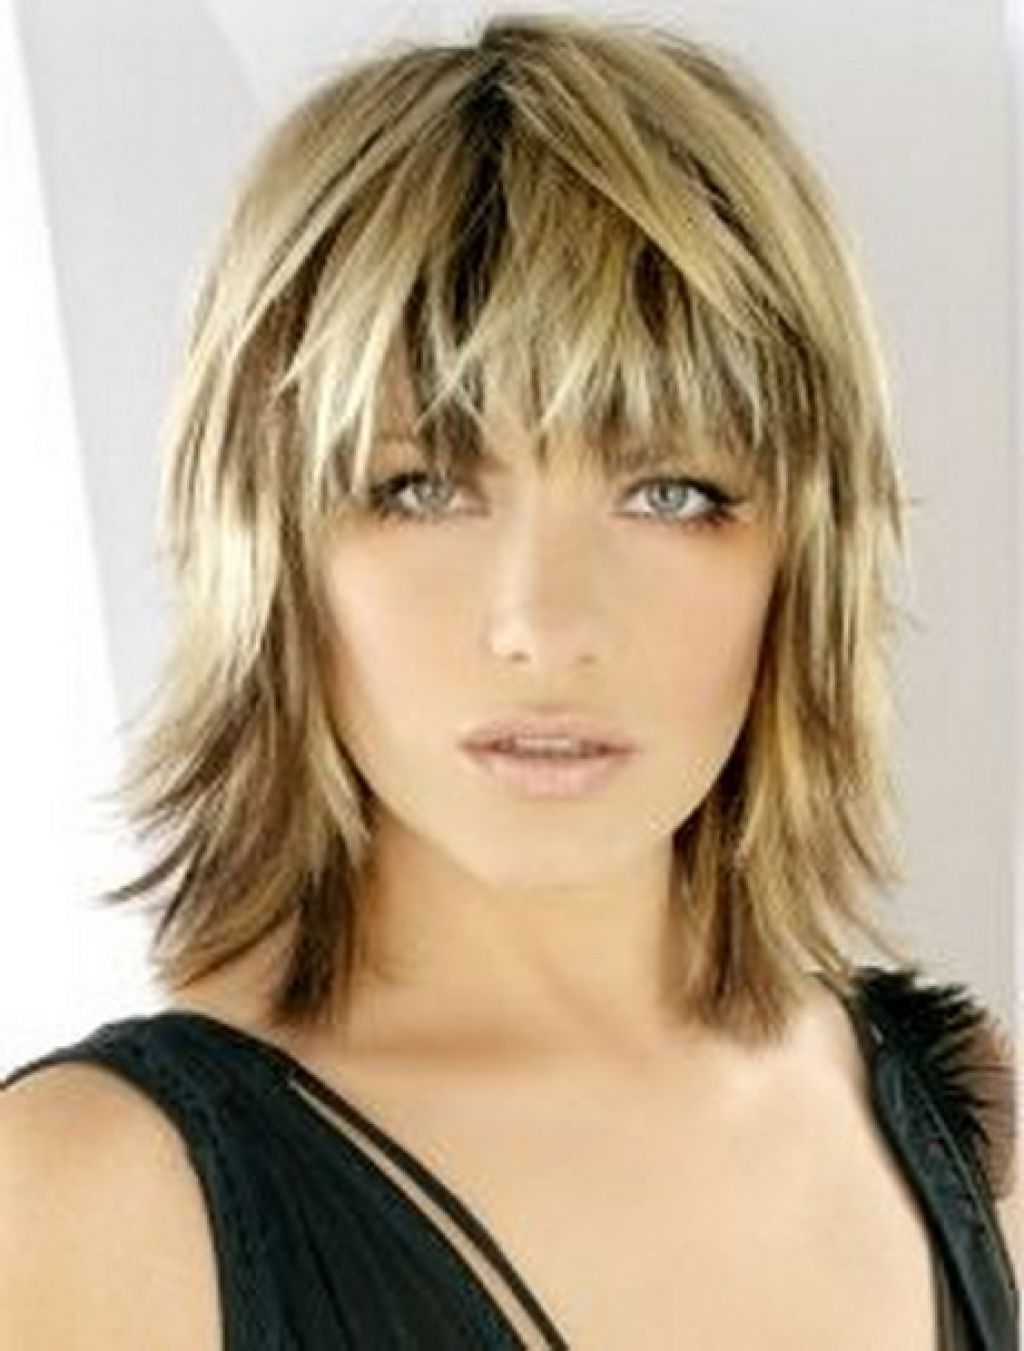 Blonde Medium Length Choppy Shag Haircut With Wispy Bangs And Dark Throughout Recent Medium Hairstyles With Wispy Bangs (View 2 of 20)